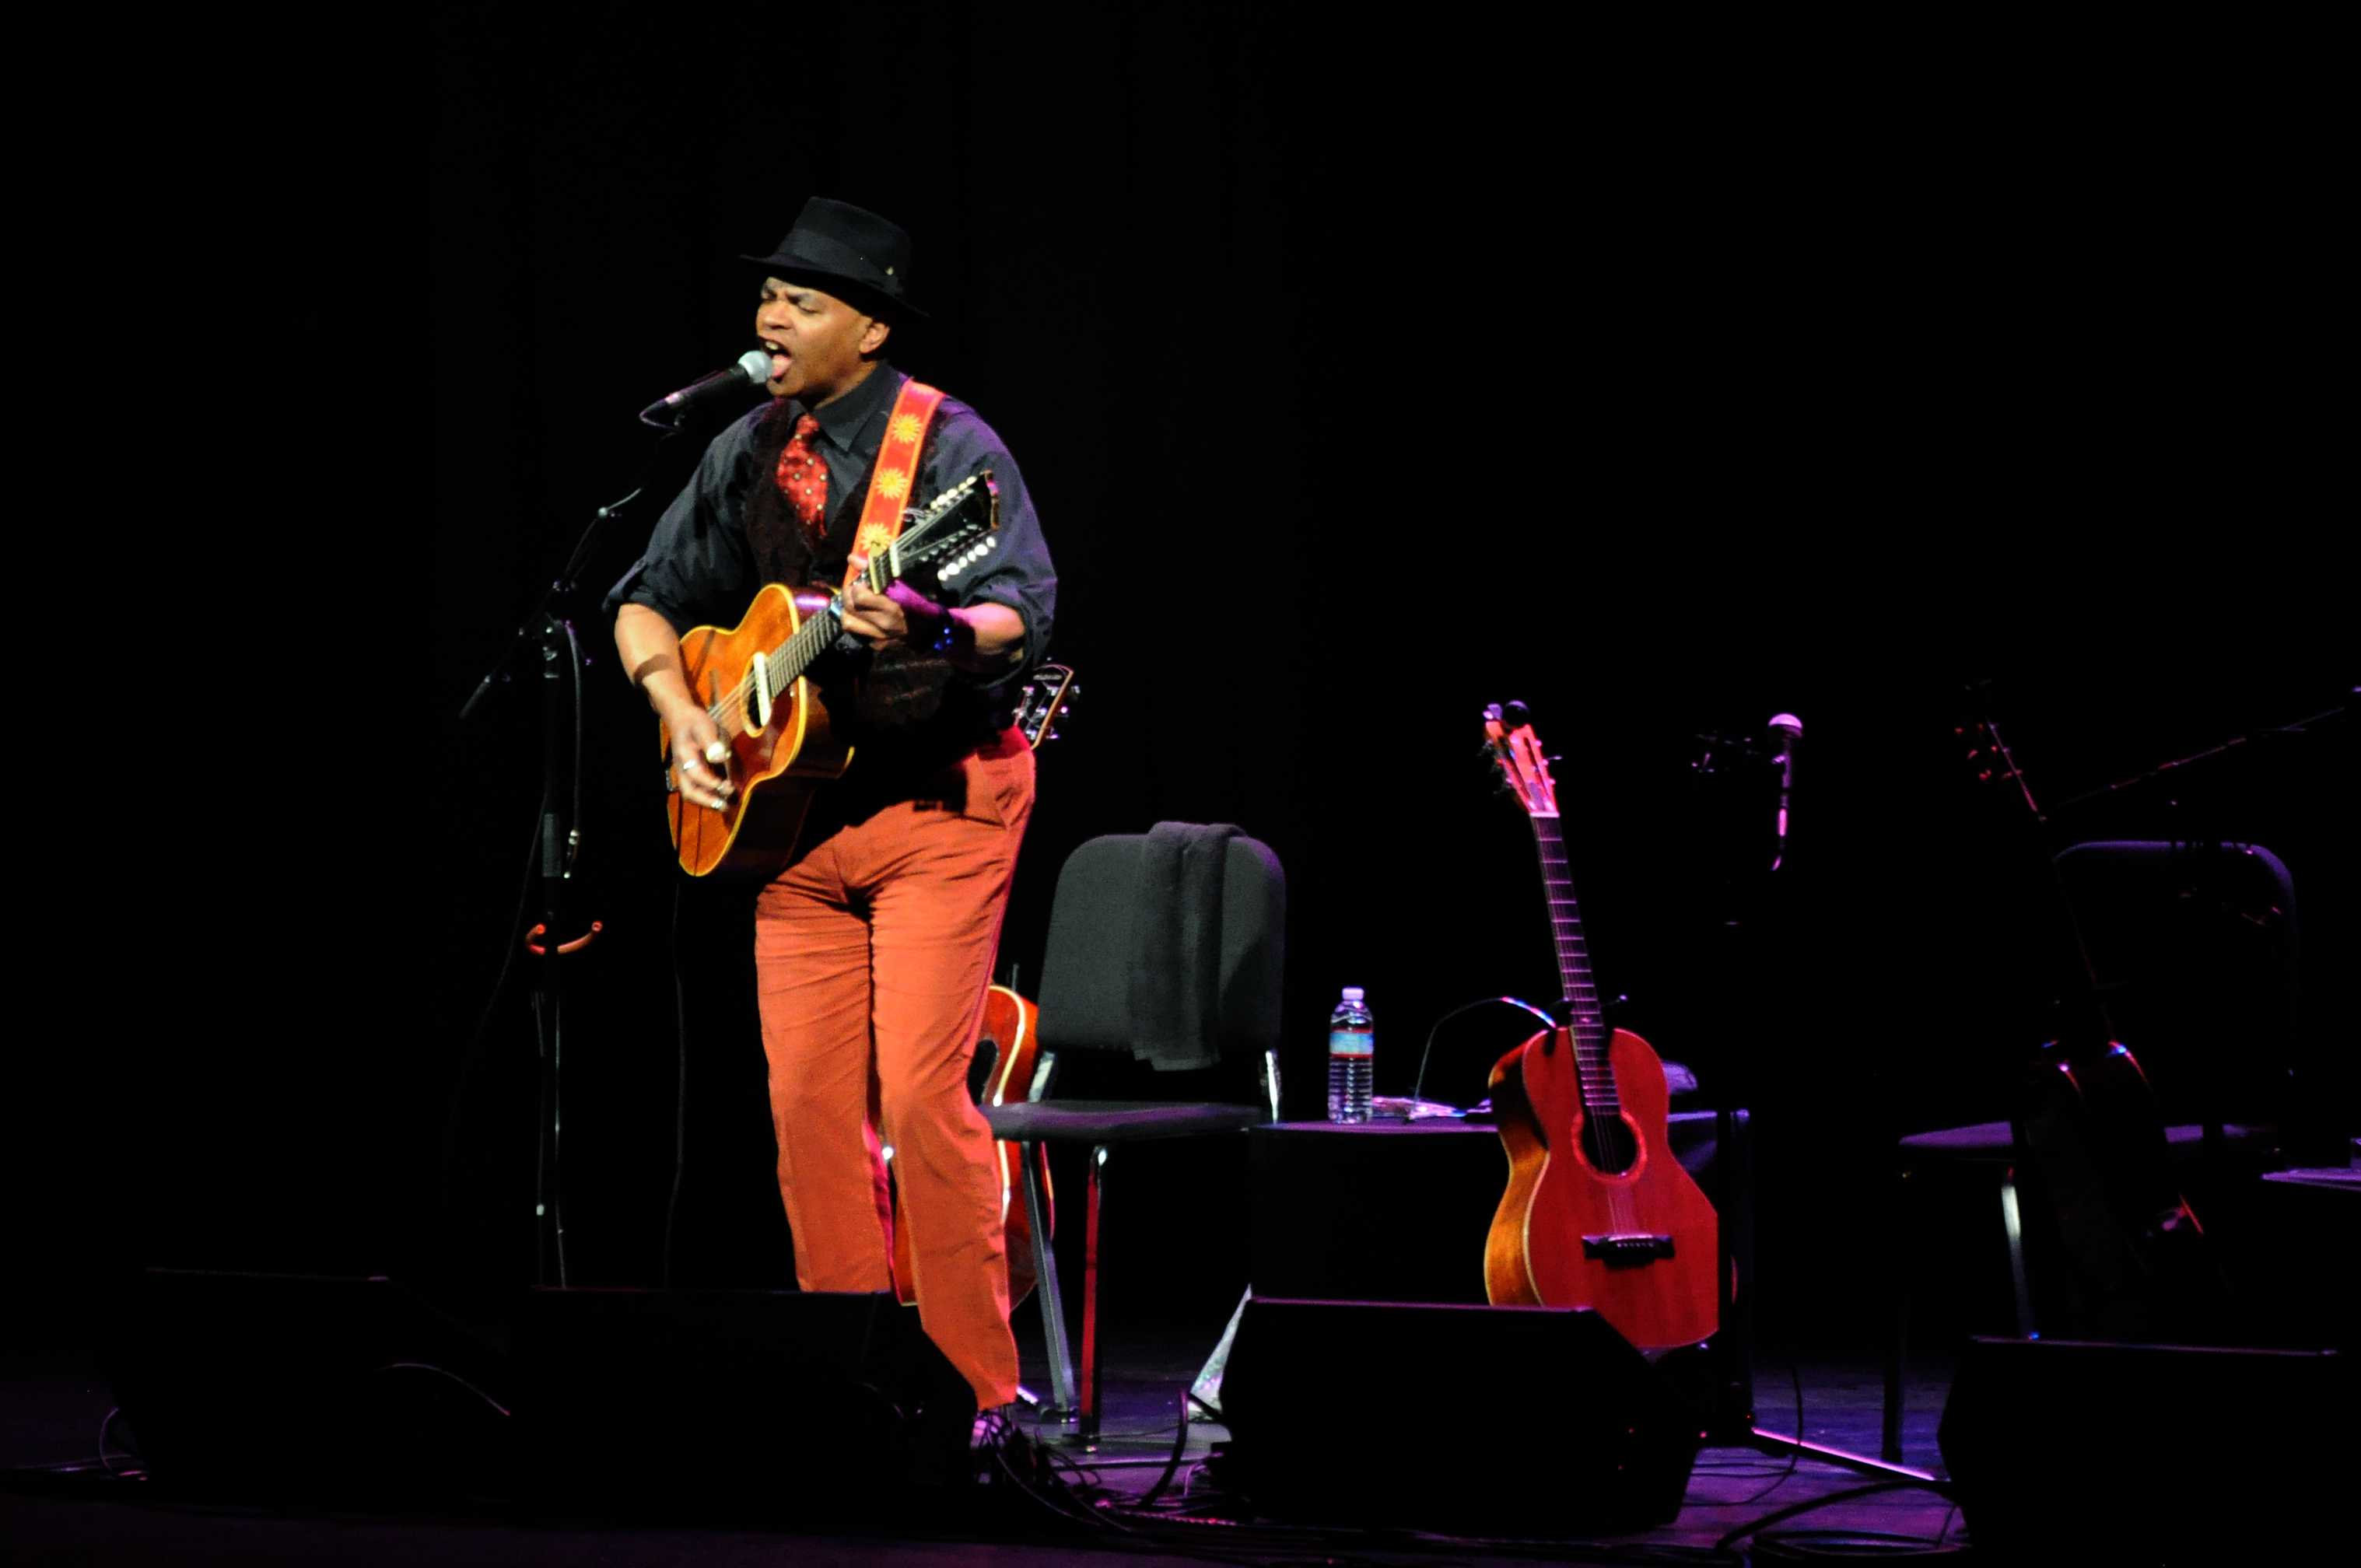 True Blues shows Chico the real deal